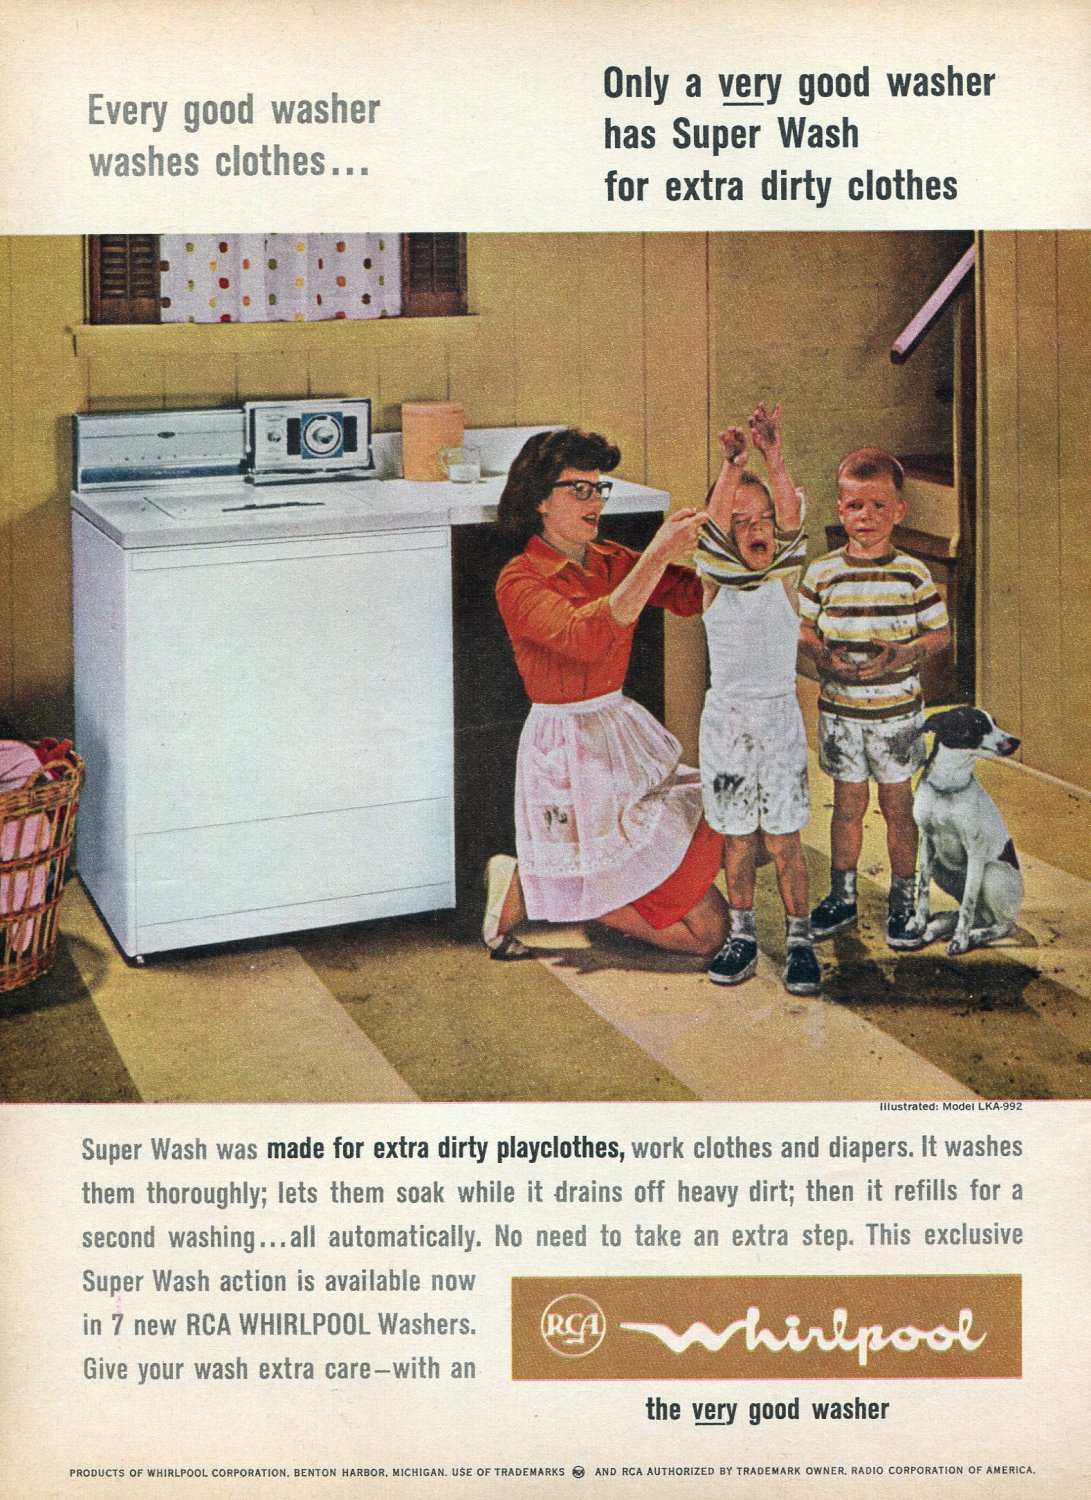 1964 RCA Whirlpool Washers with Super Wash for Extra Dirty Clothes Ad Advert